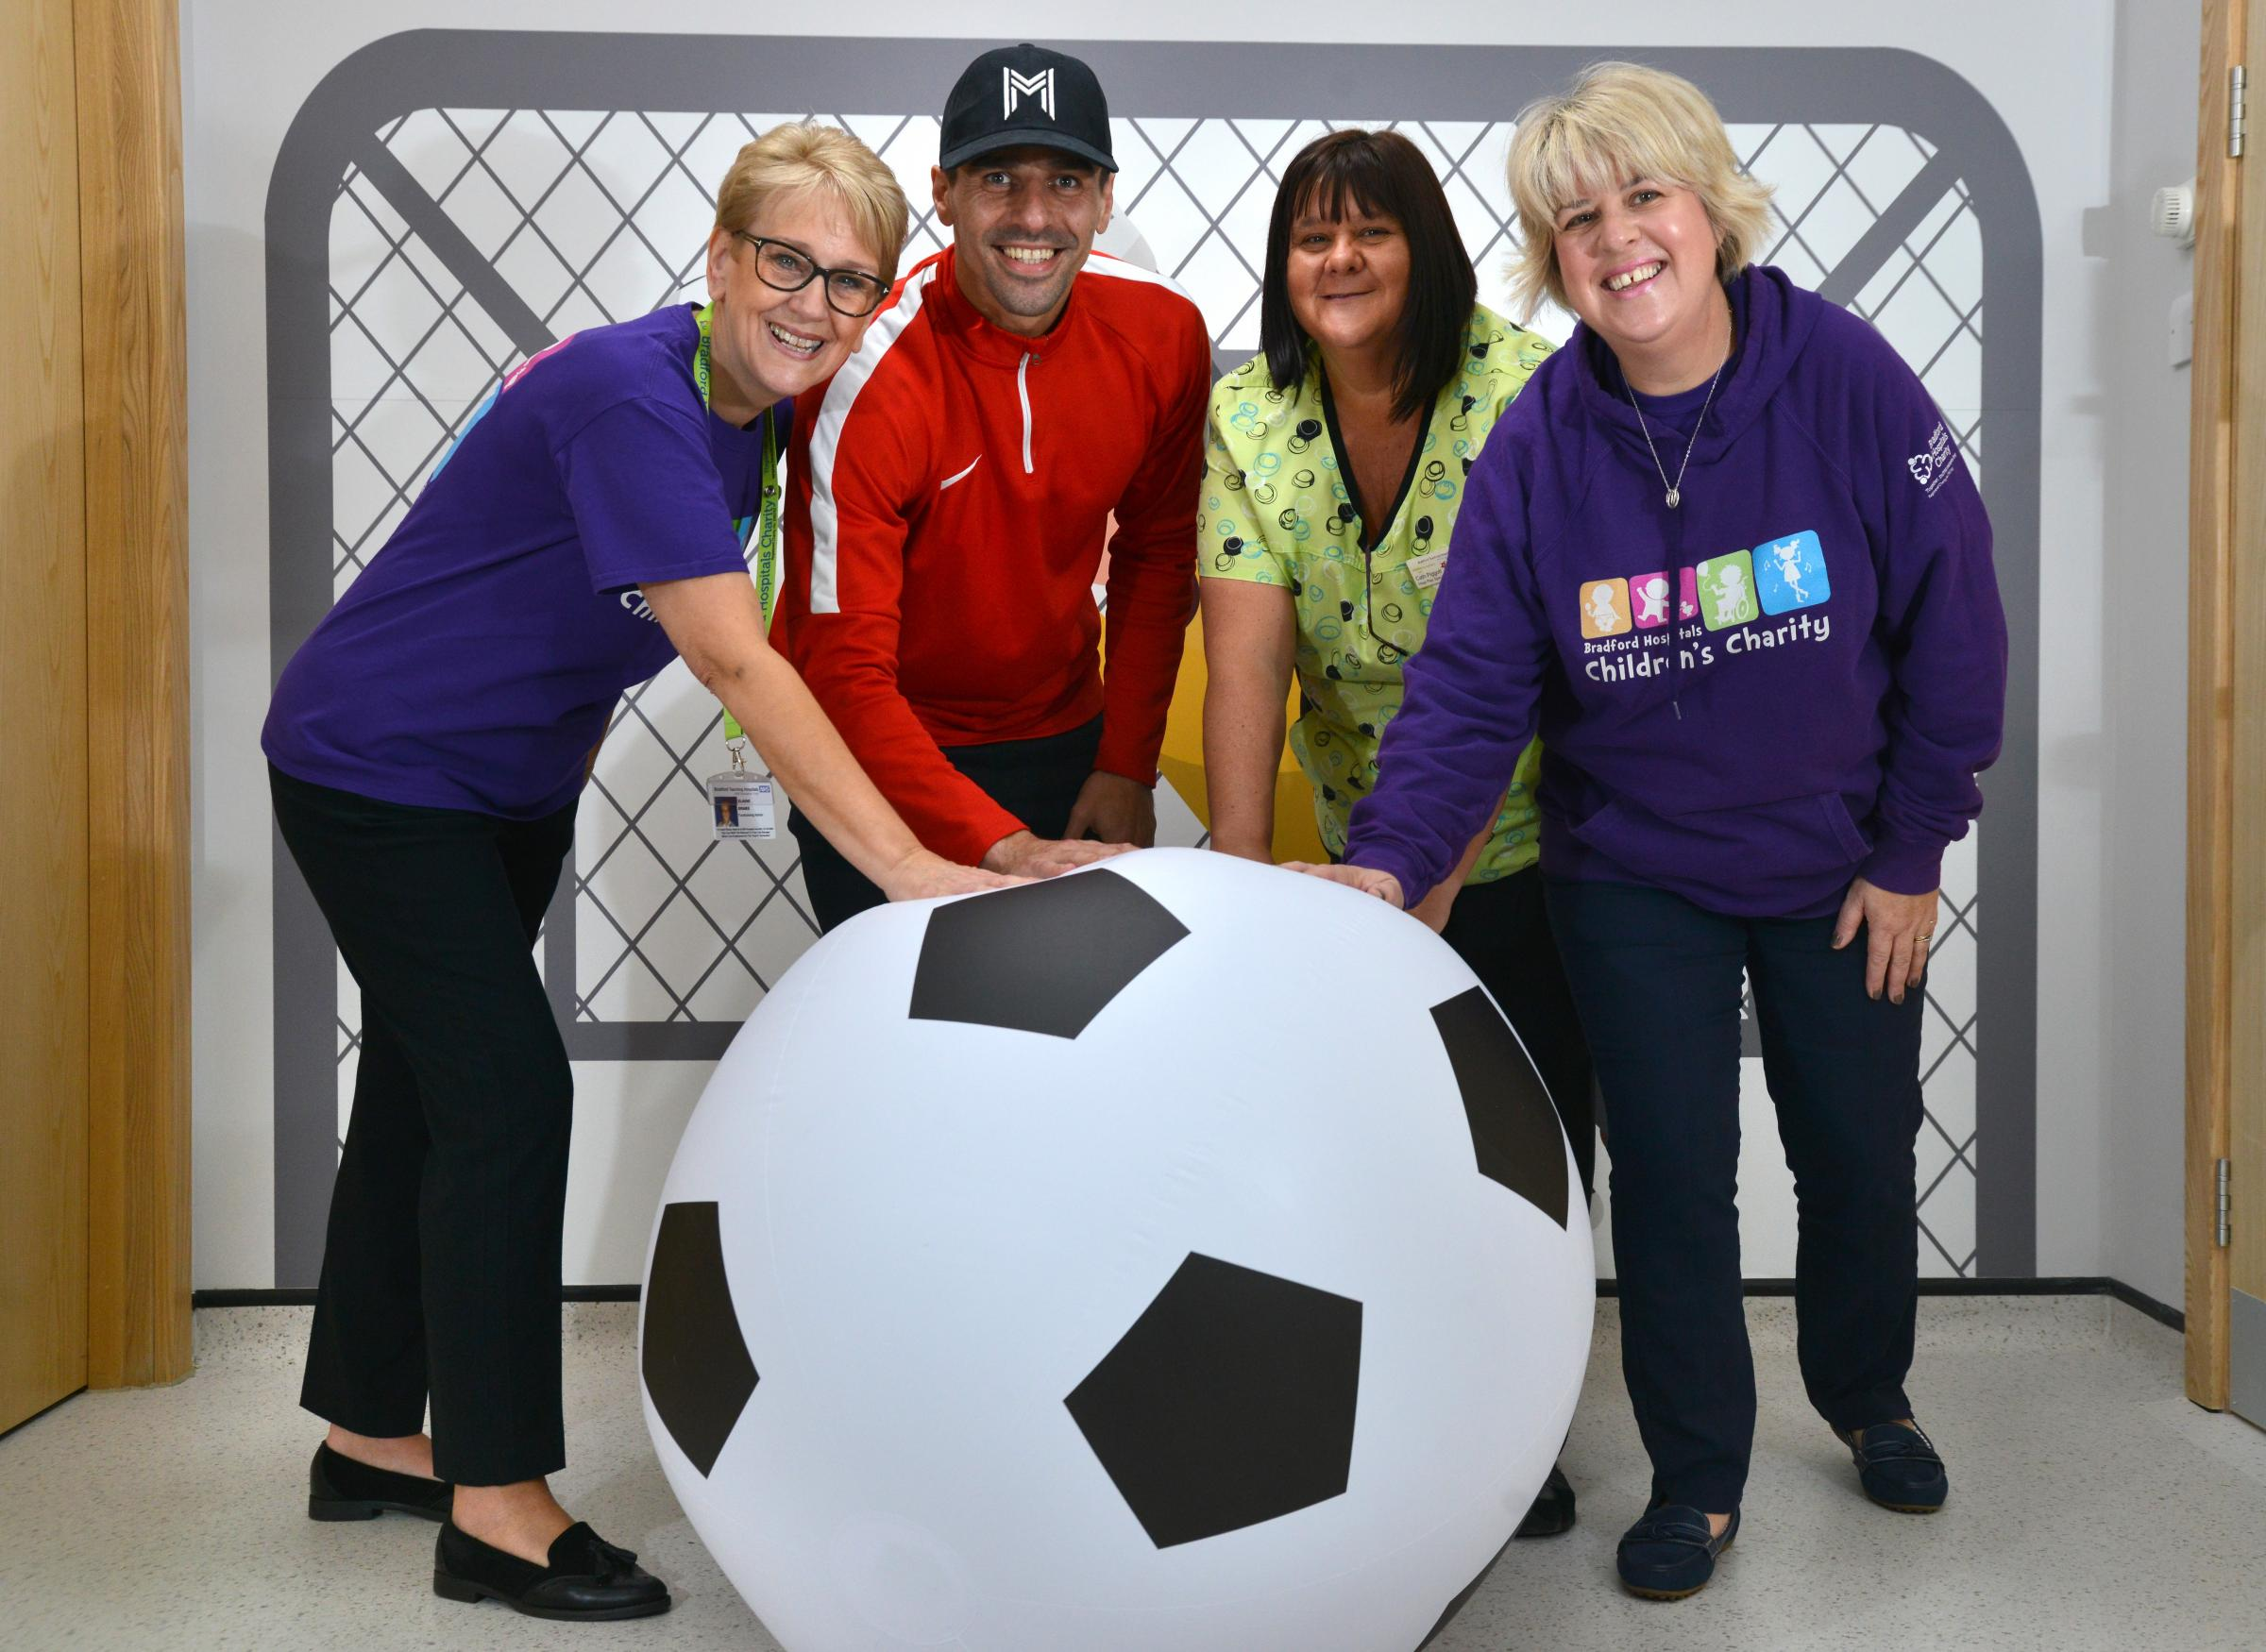 Former Bradford City winger Filipe Morais is returning to the city to give a £500 donation to the children's ward at BRI pictured with Elaine Drake, Filipe Morais, Cath Piggott and Hayley Collis